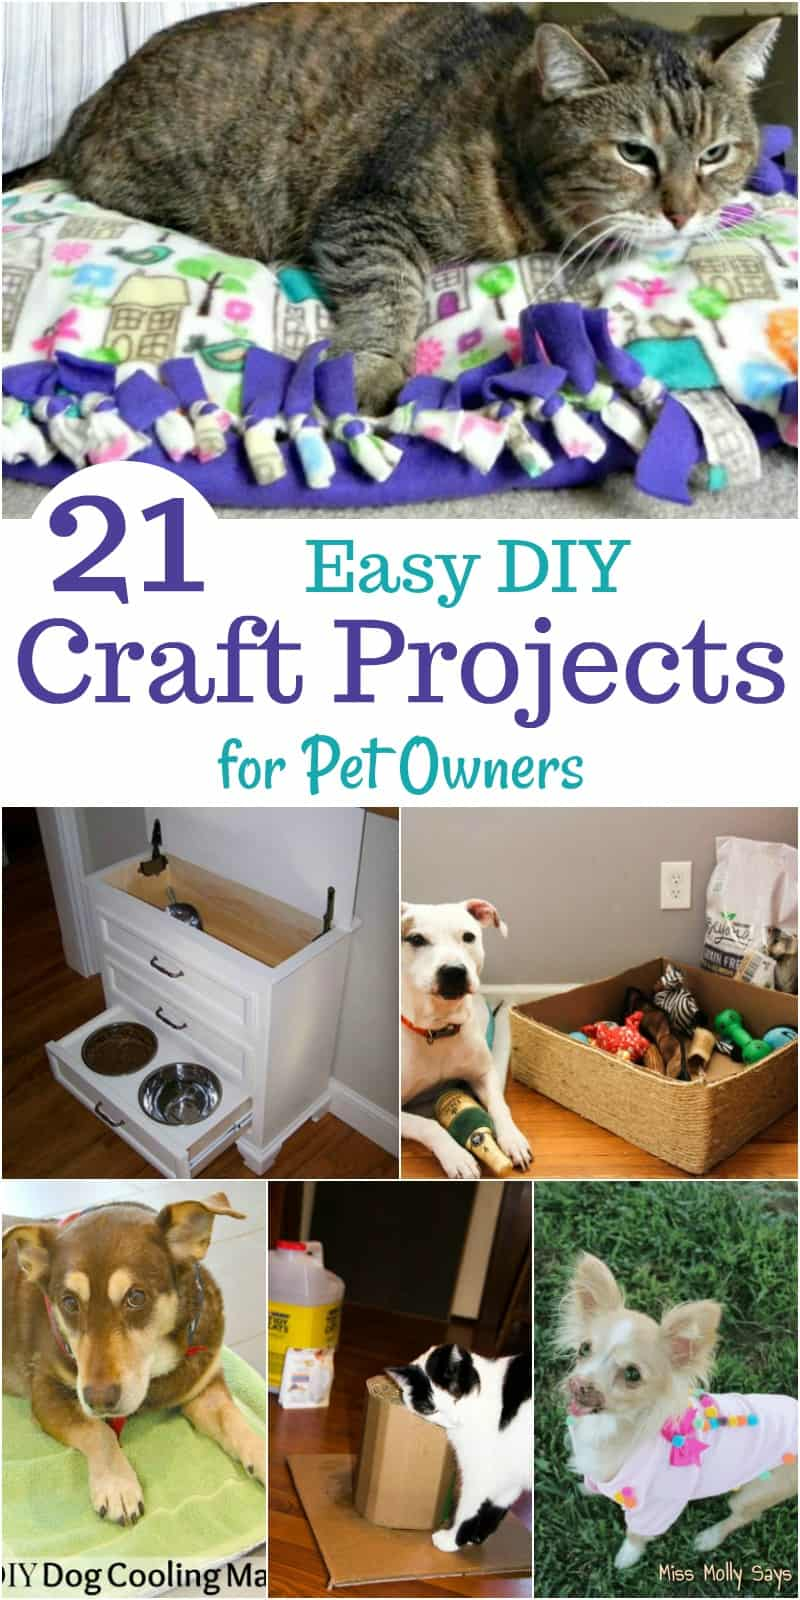 21 Easy DIY Craft Projects for Pet Owners